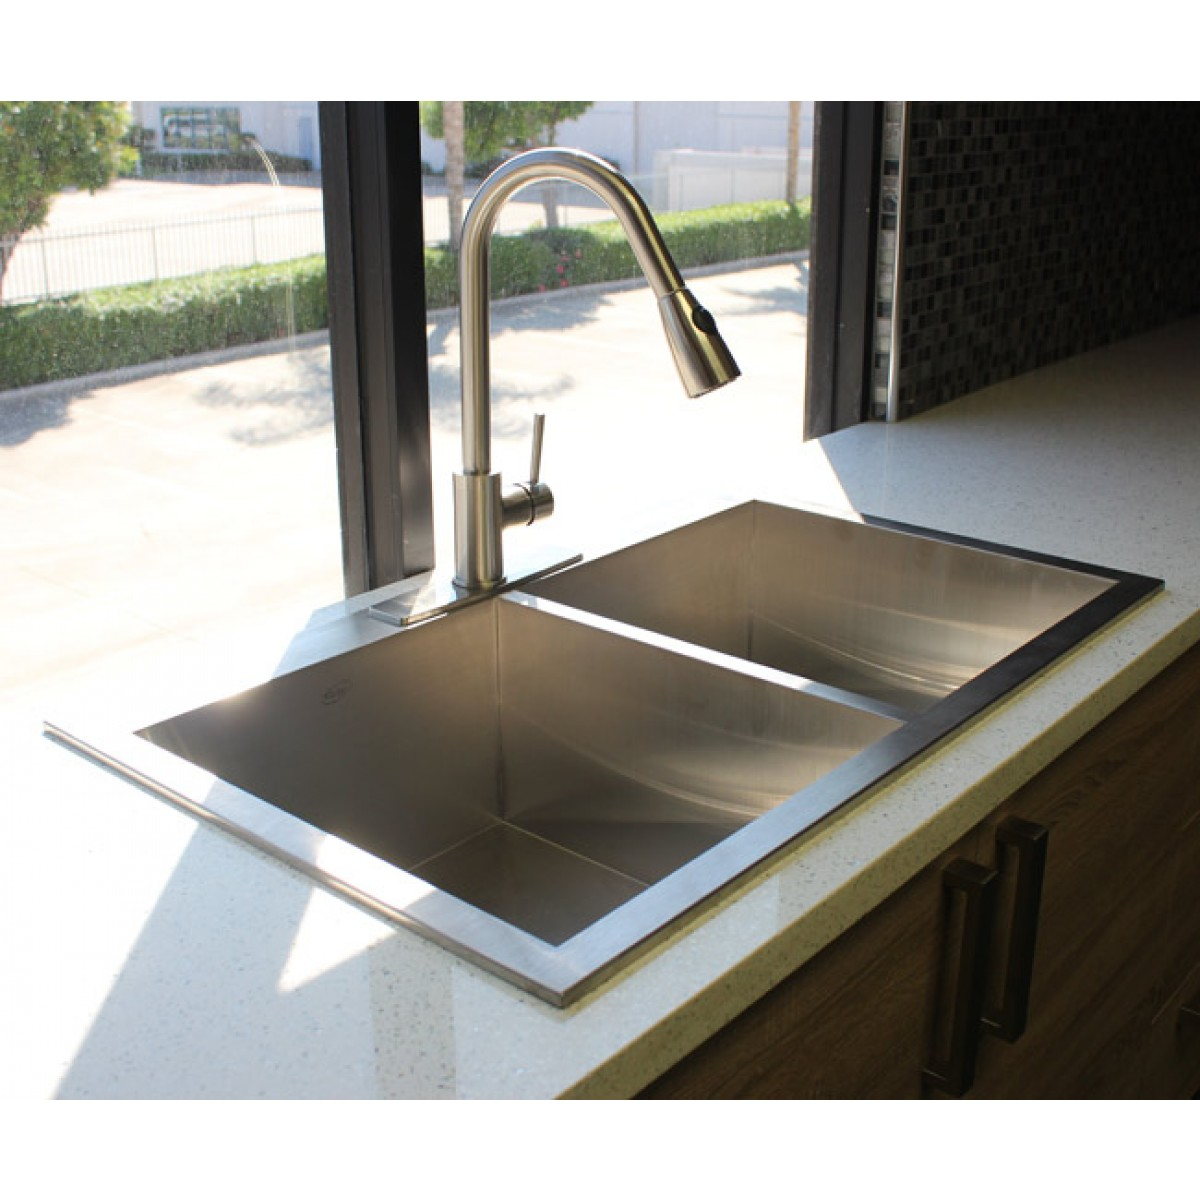 Top Mount Sink Kitchen: 33 Inch Top-Mount / Drop-In Stainless Steel Double Bowl